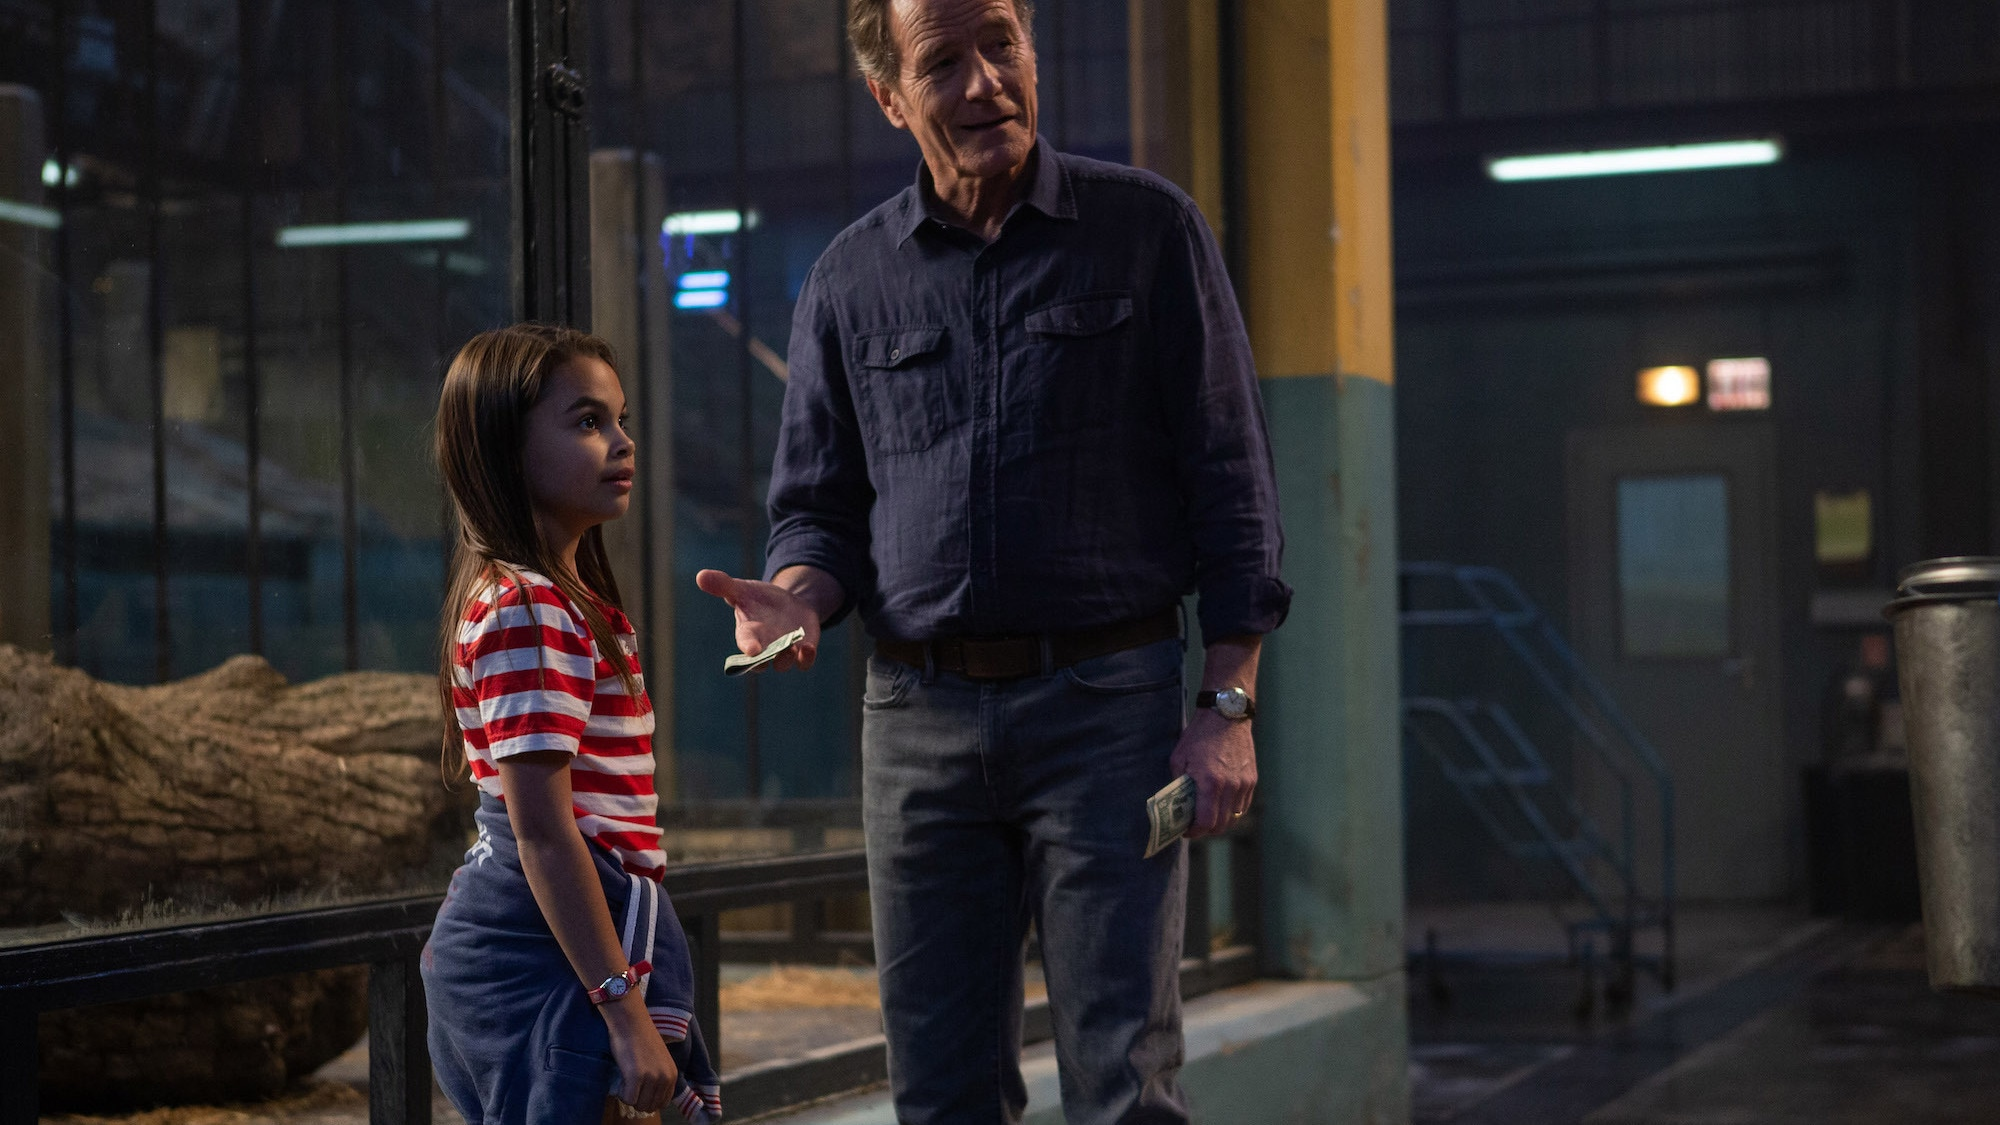 Ariana Greenblatt as Julia and Bryan Cranston as Mack in Disney's THE ONE AND ONLY IVAN, based on the award-winning book by Katherine Applegate and directed by Thea Sharrock. Photo courtesy of Disney. © 2020 Disney Enterprises, Inc. All Rights Reserved.